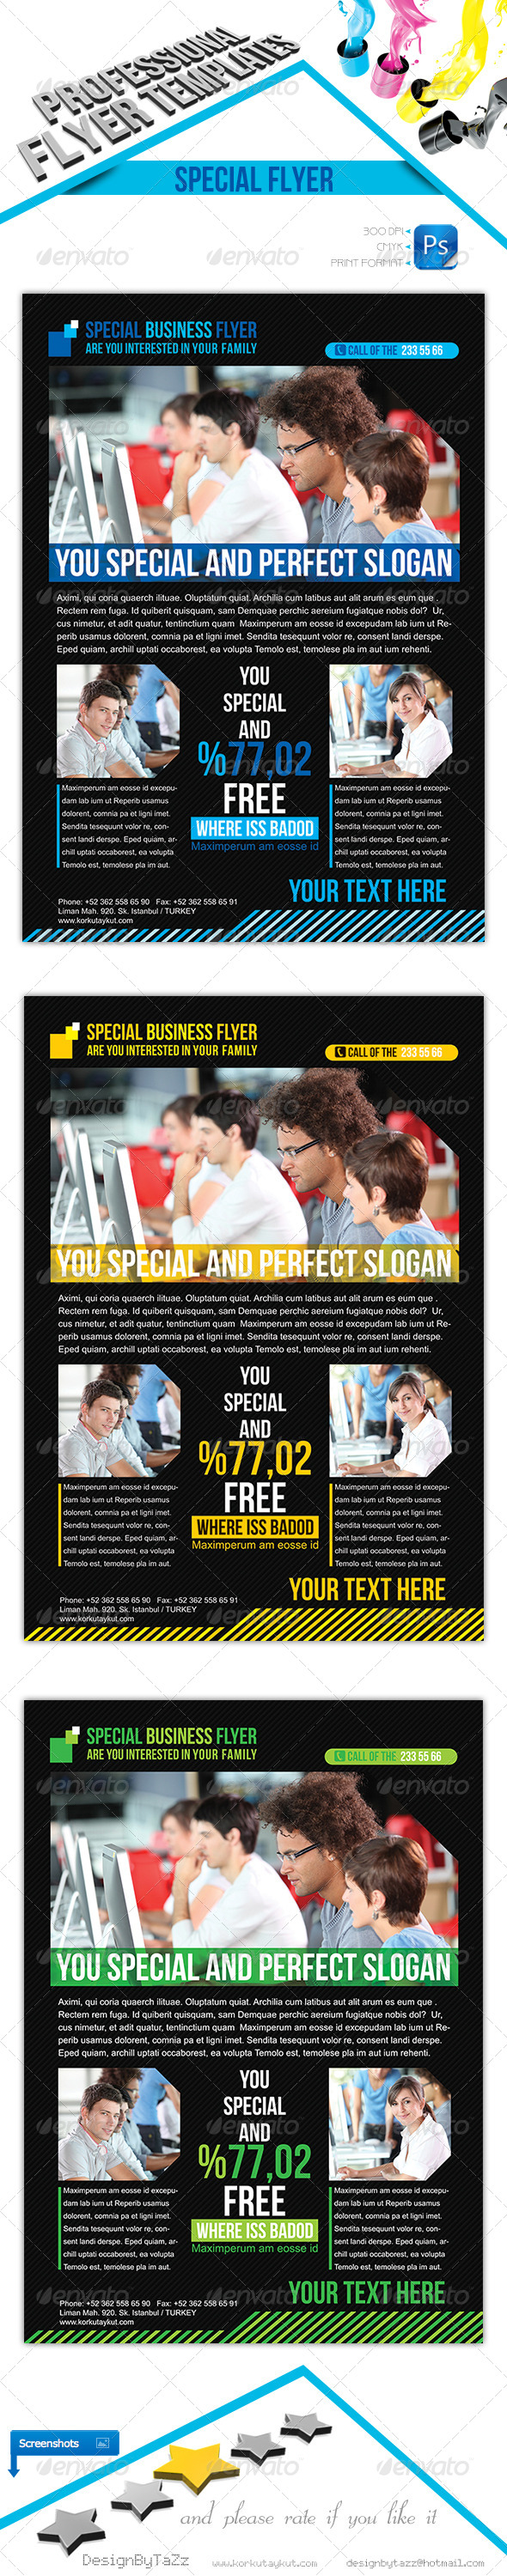 Special Business Flyer Template - Corporate Flyers